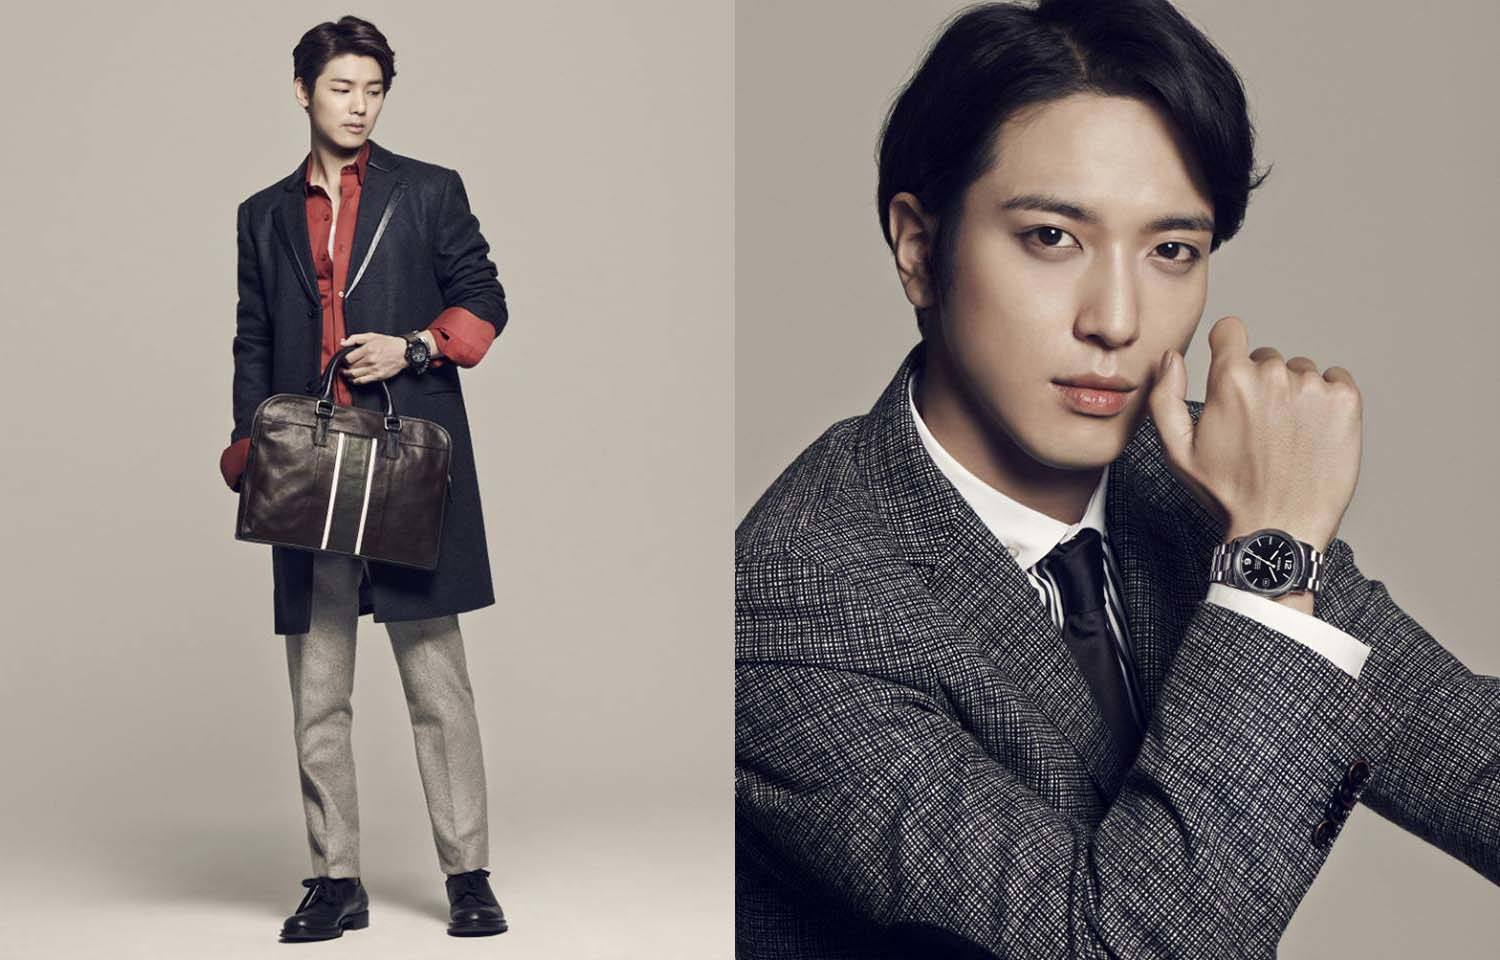 cnblue dating rumors [news] bts and mamamoo confirmed for music bank's world tour  the two even were caught up in dating rumors  cnblue, bts, mamamoo, and.